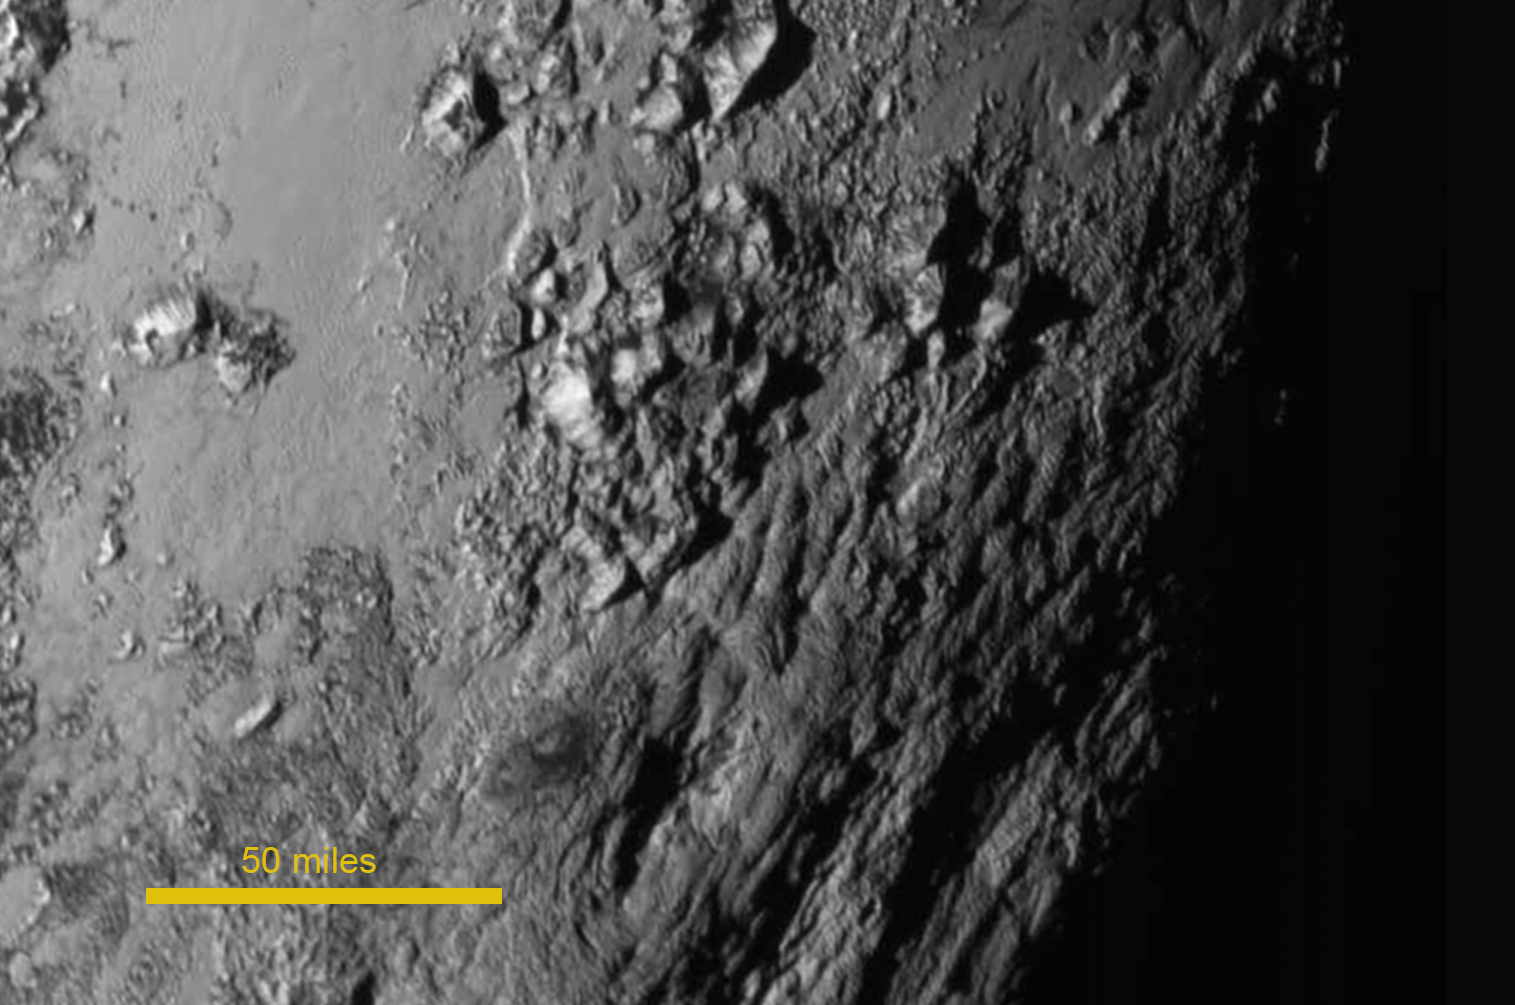 New Photos of Pluto and Moon Surprise, Puzzle Scientists